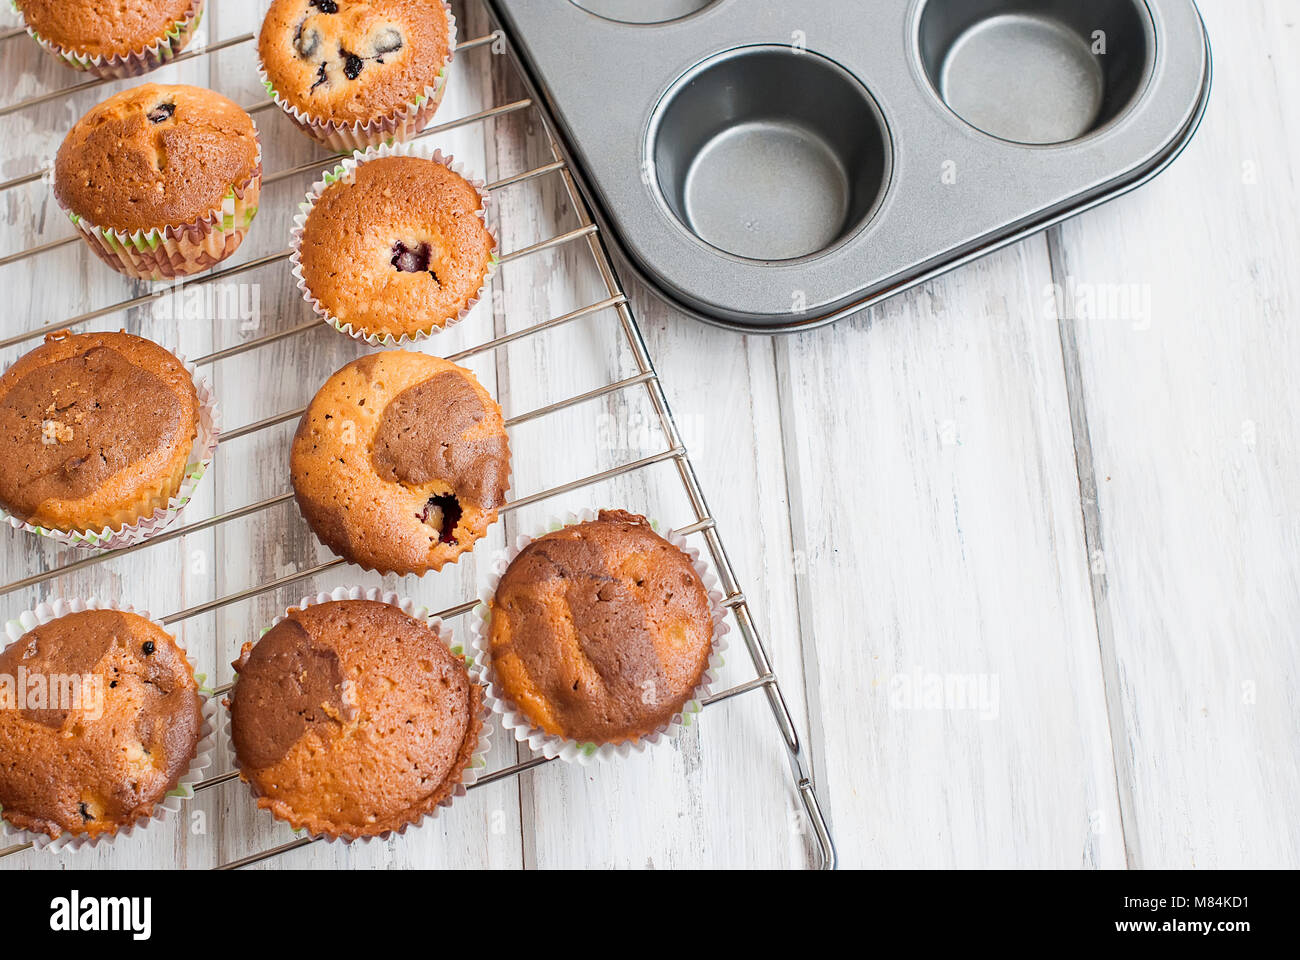 A row of chocolate and vanilla  homemade muffins on a white wooden background  bakery concept. - Stock Image